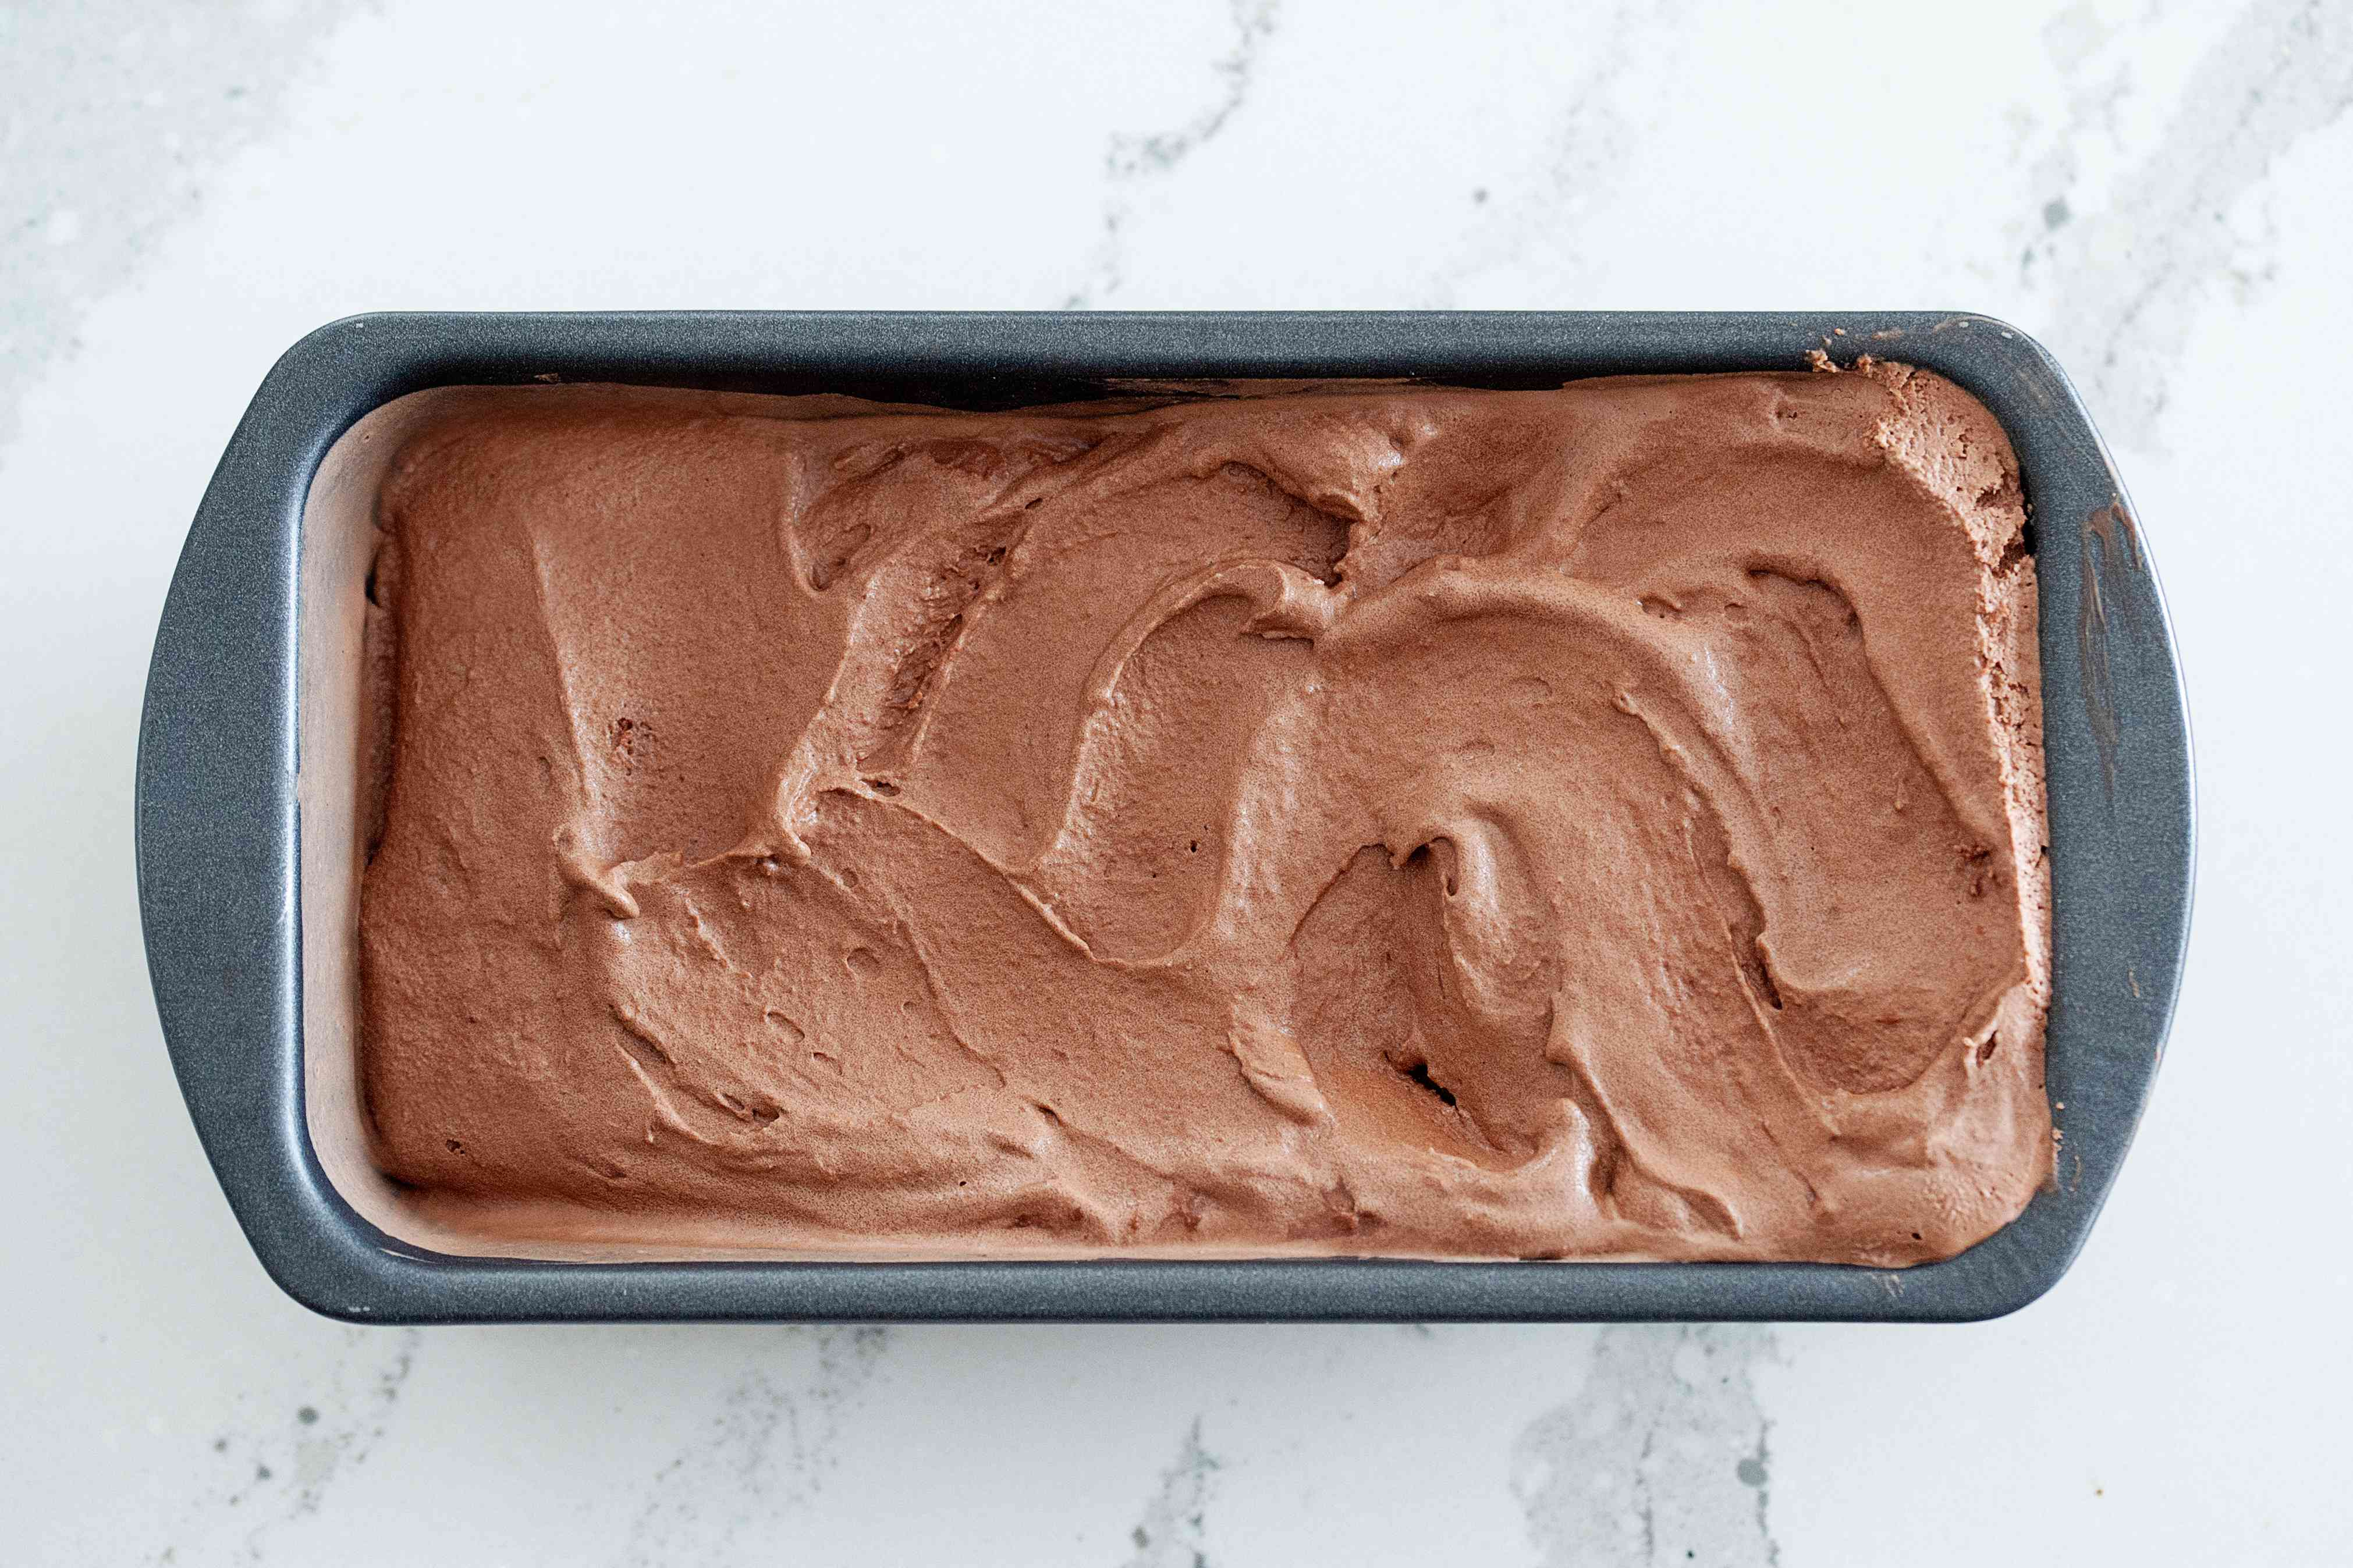 Chocolate ice cream in a loaf pan.